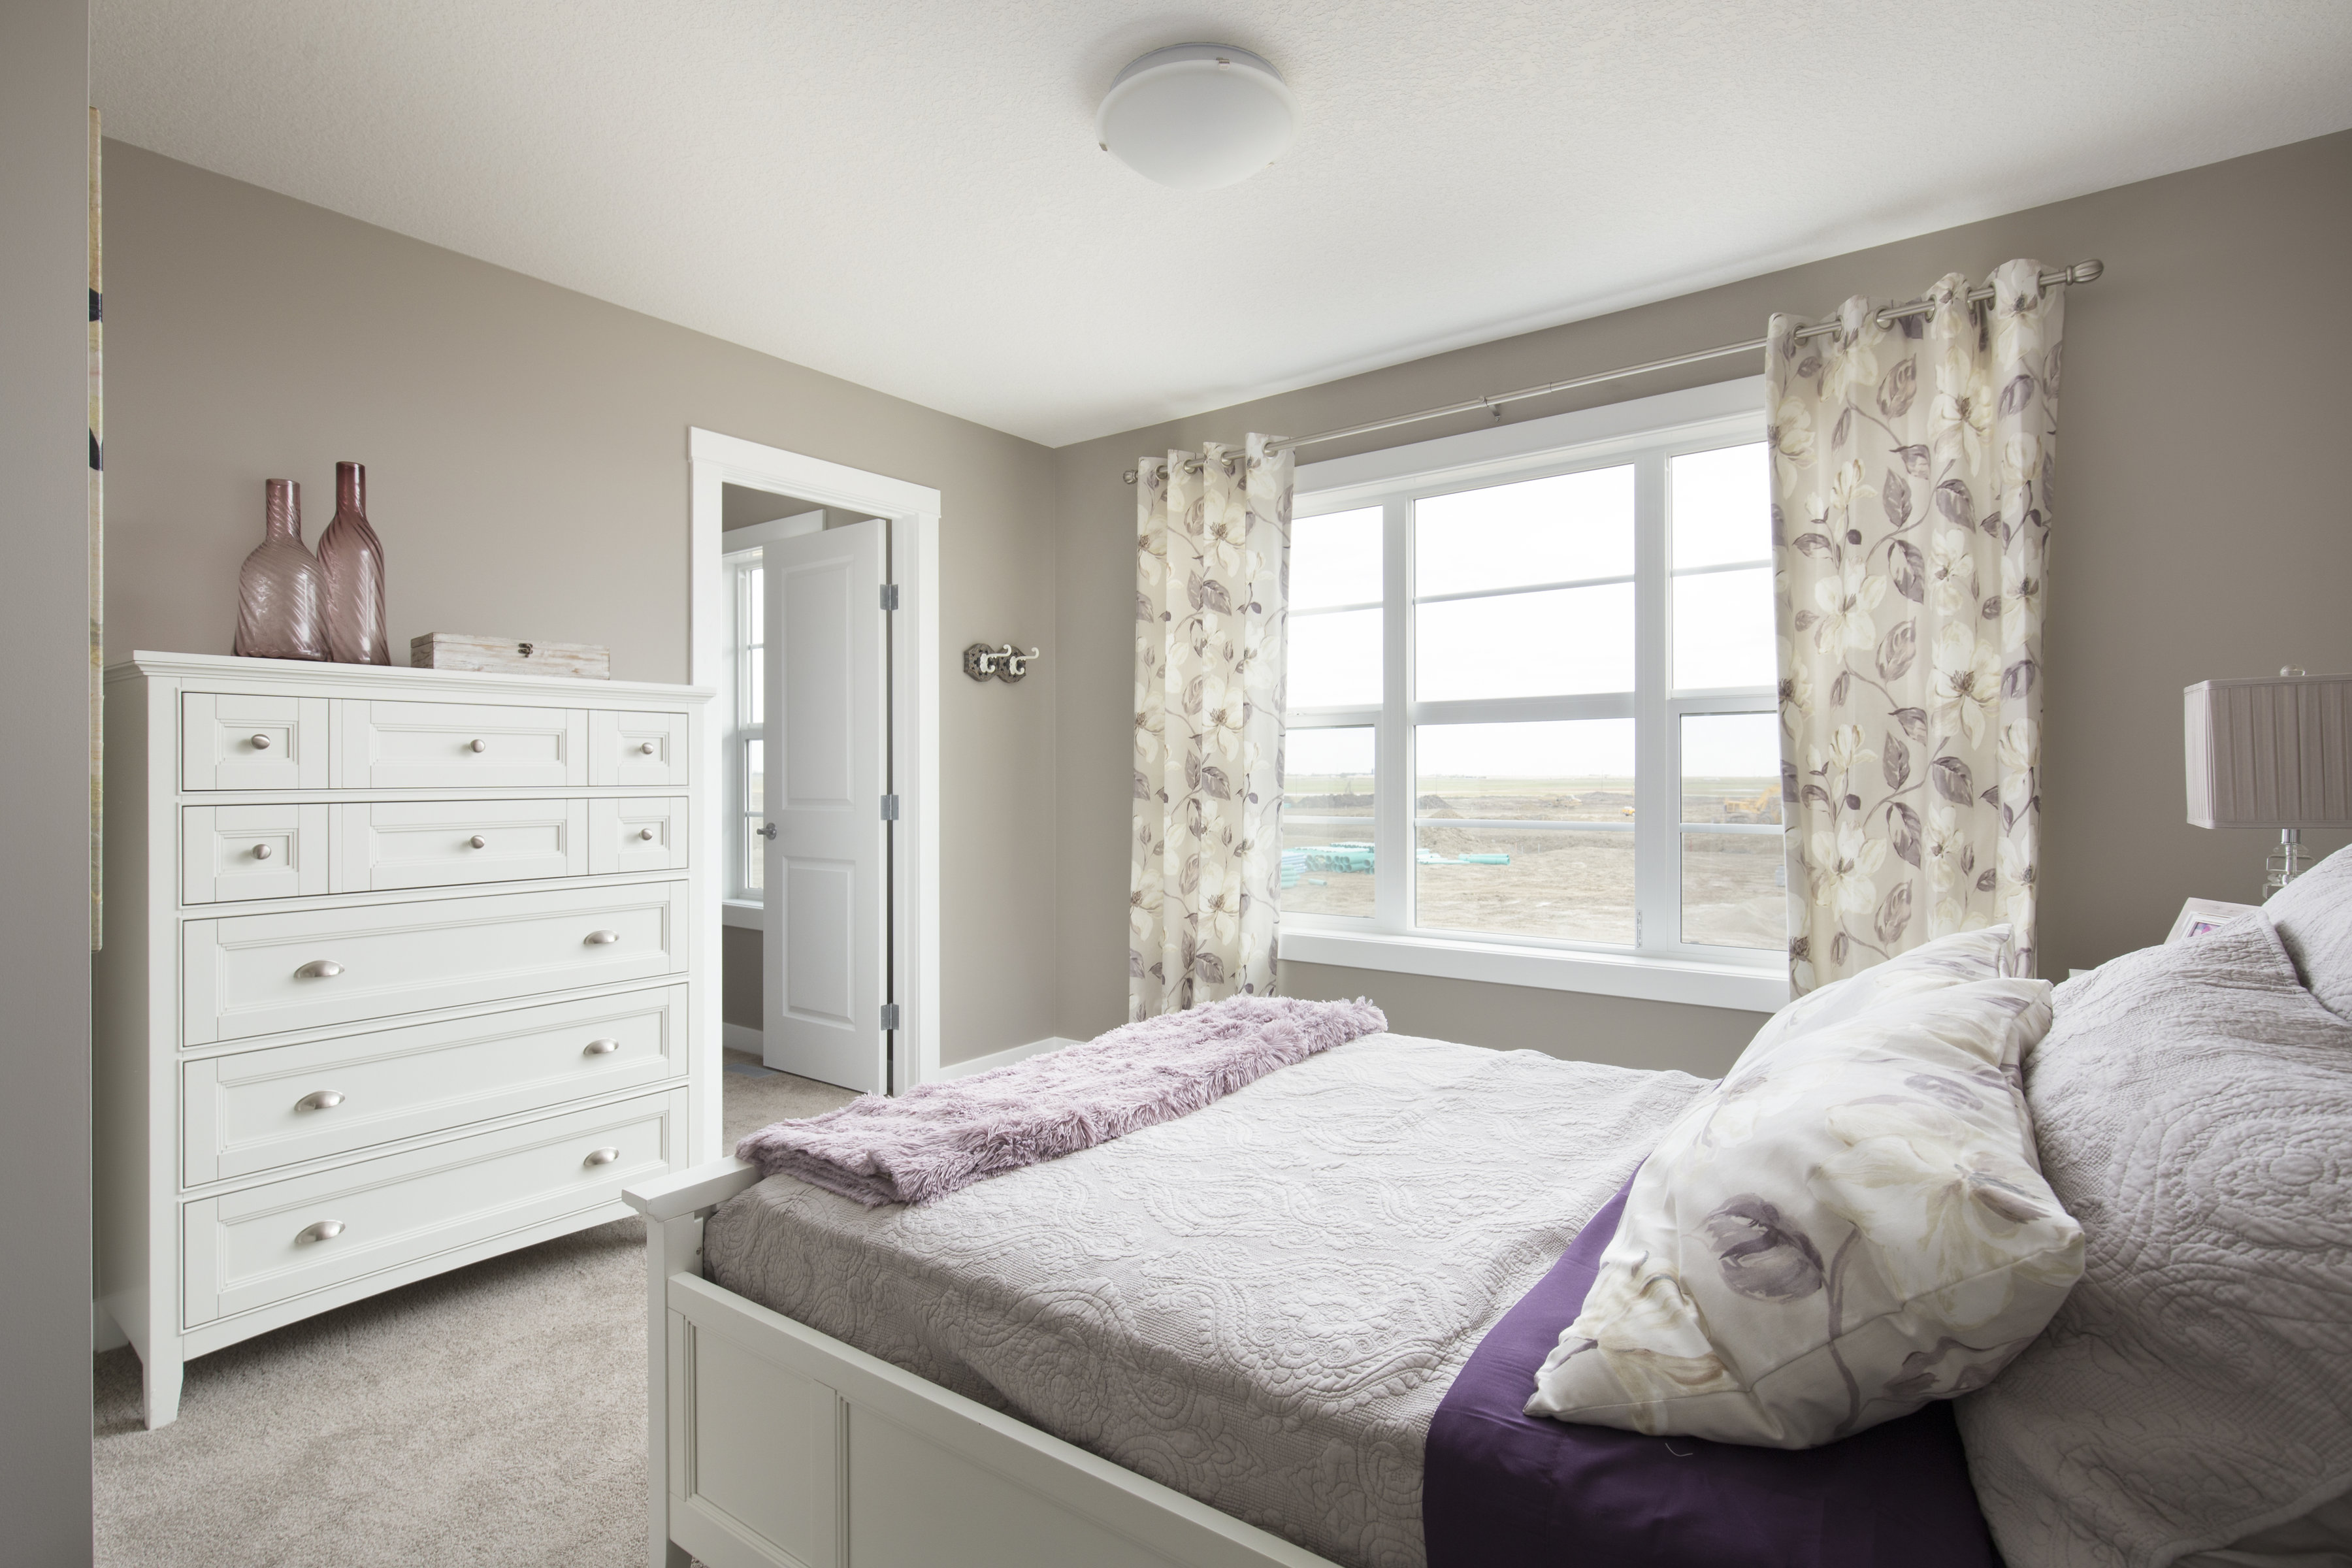 example of a bedroom in shane front drive homes at cornerstone community.